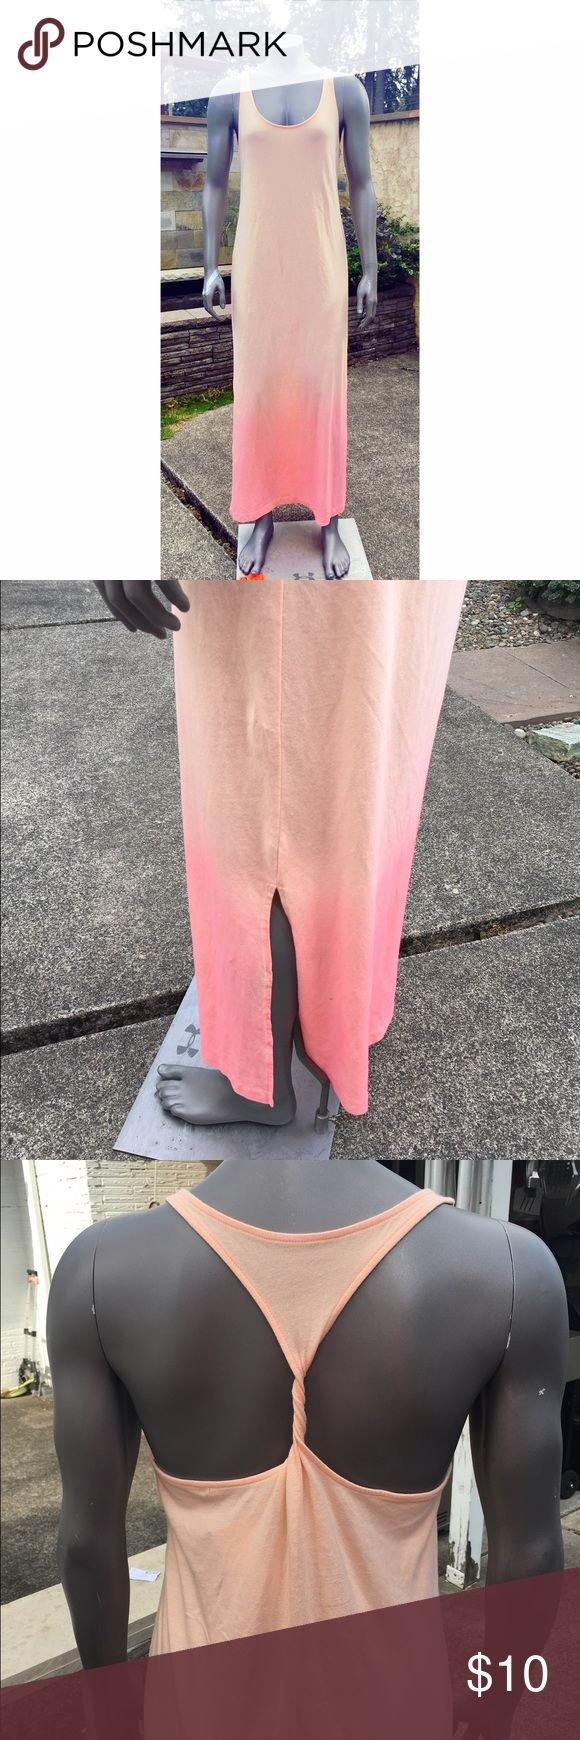 Xhiliration maxi dress. From orange to pink ombré this dress will rock it in the summer making your tan pop and with a twisted back to show off those shoulders. It's light airy with two small slits that reach your calves. Xhilaration Dresses Maxi